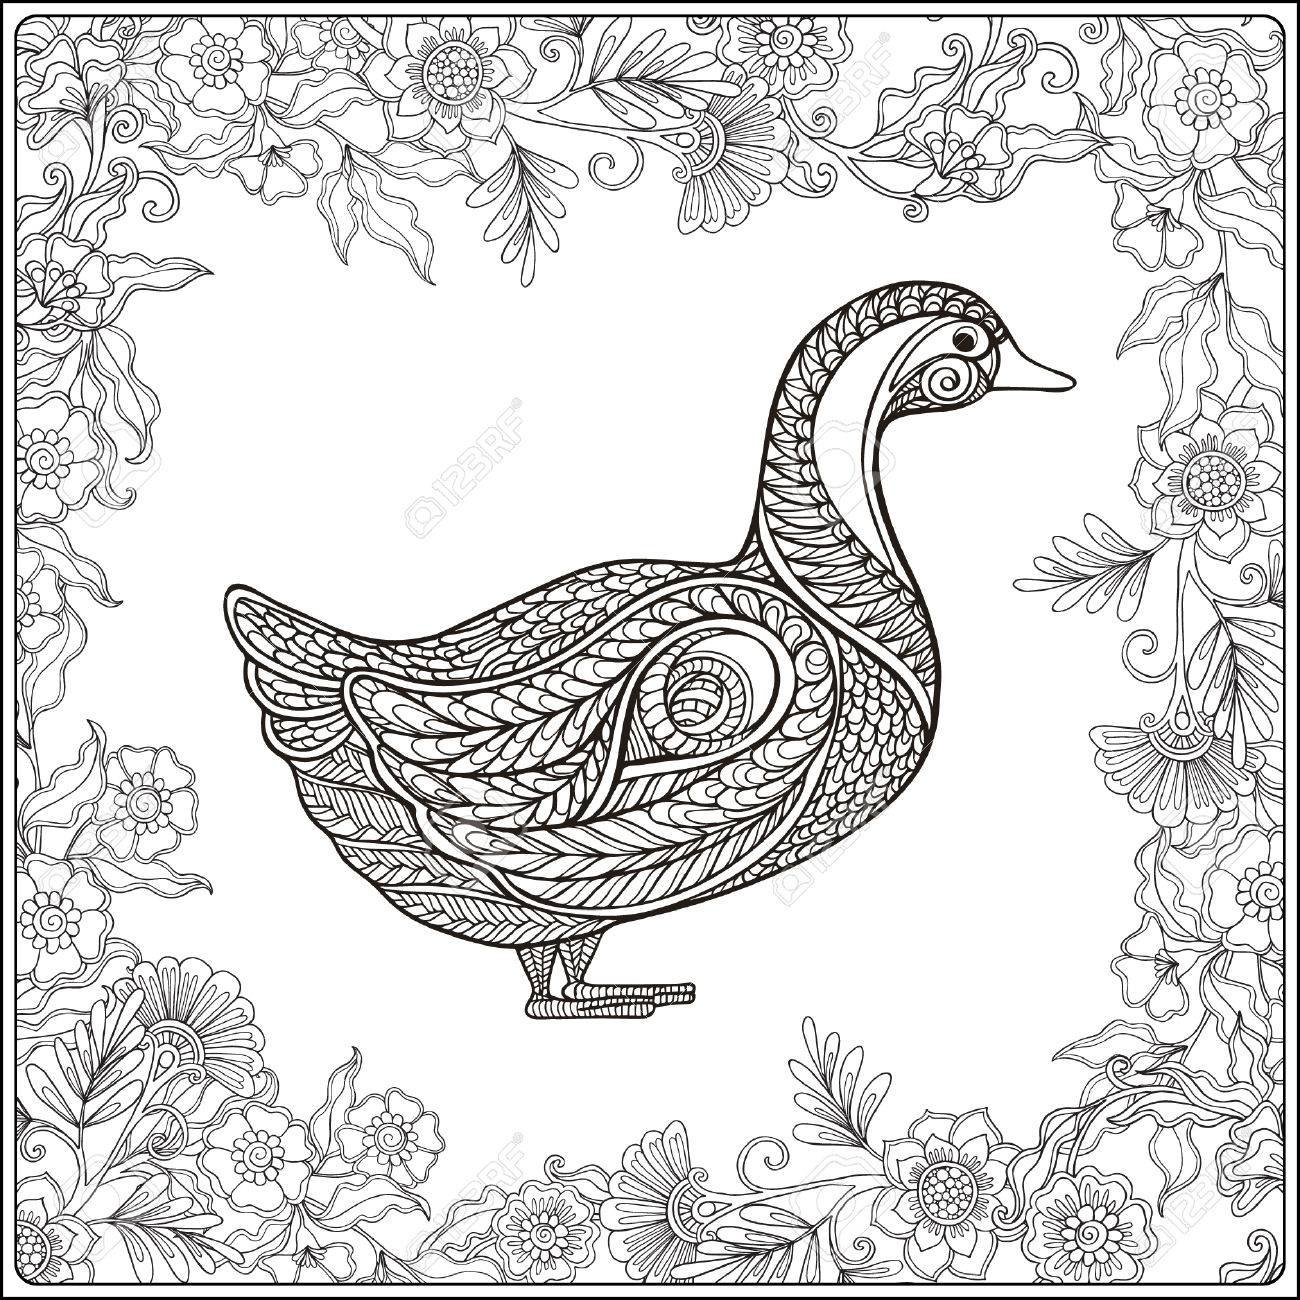 1300x1300 Duck In Floral Frame. Coloring Book For Adult And Older Children